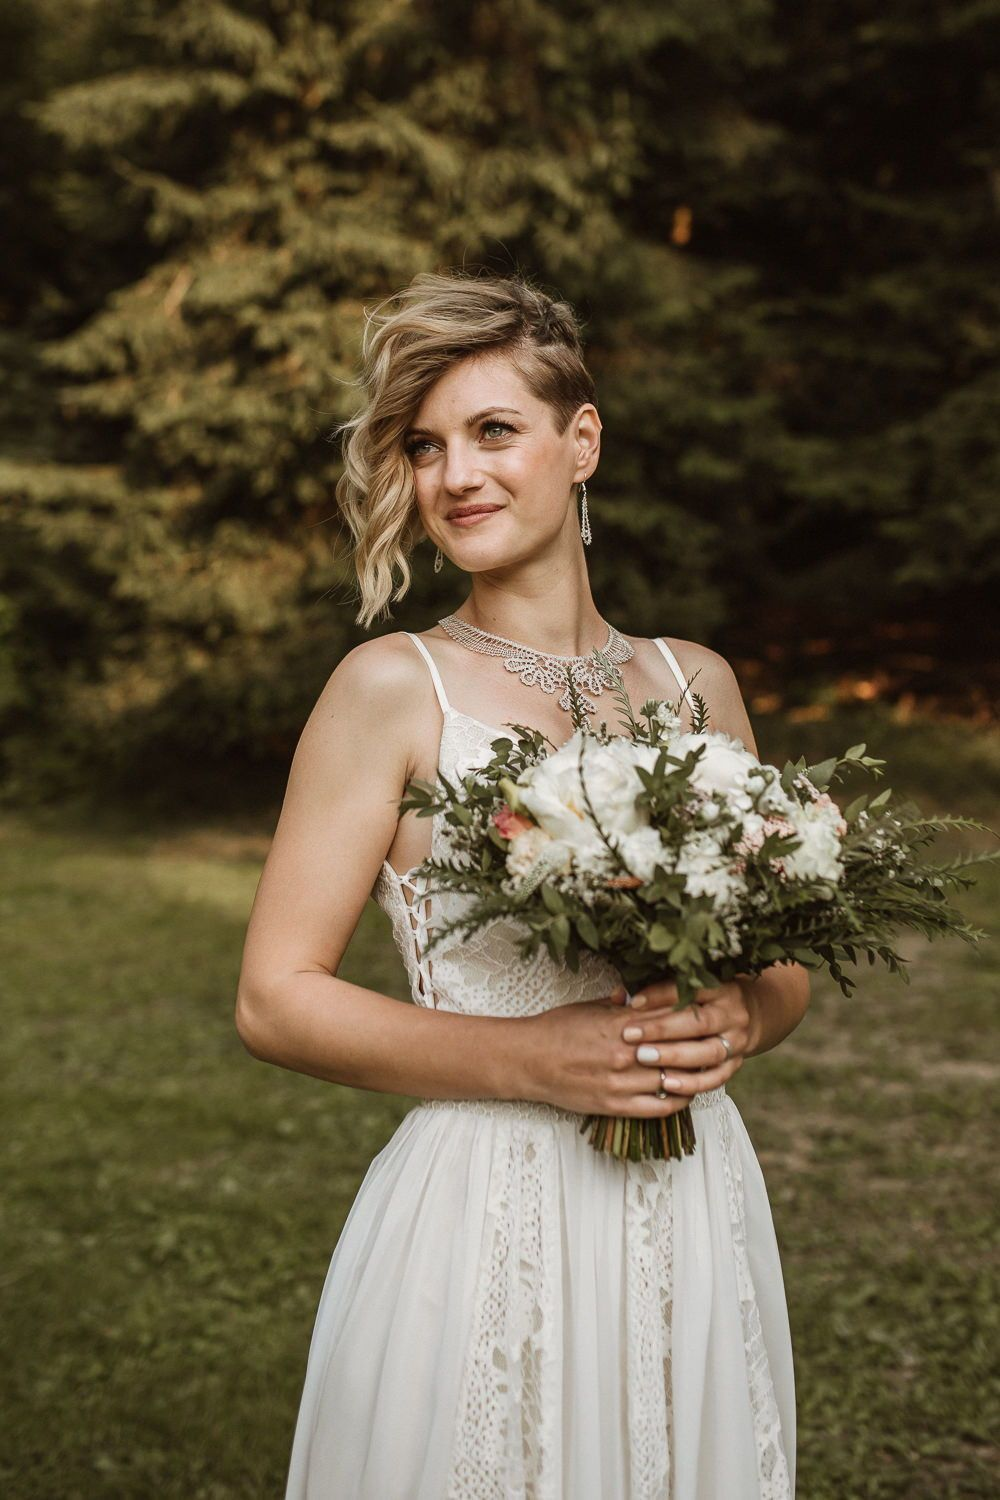 Nature Bridal Portait Short Hair Bridal Style Inspiration Forest Wedding Forest Inspired Wedding Bridal Style [ 1500 x 1000 Pixel ]